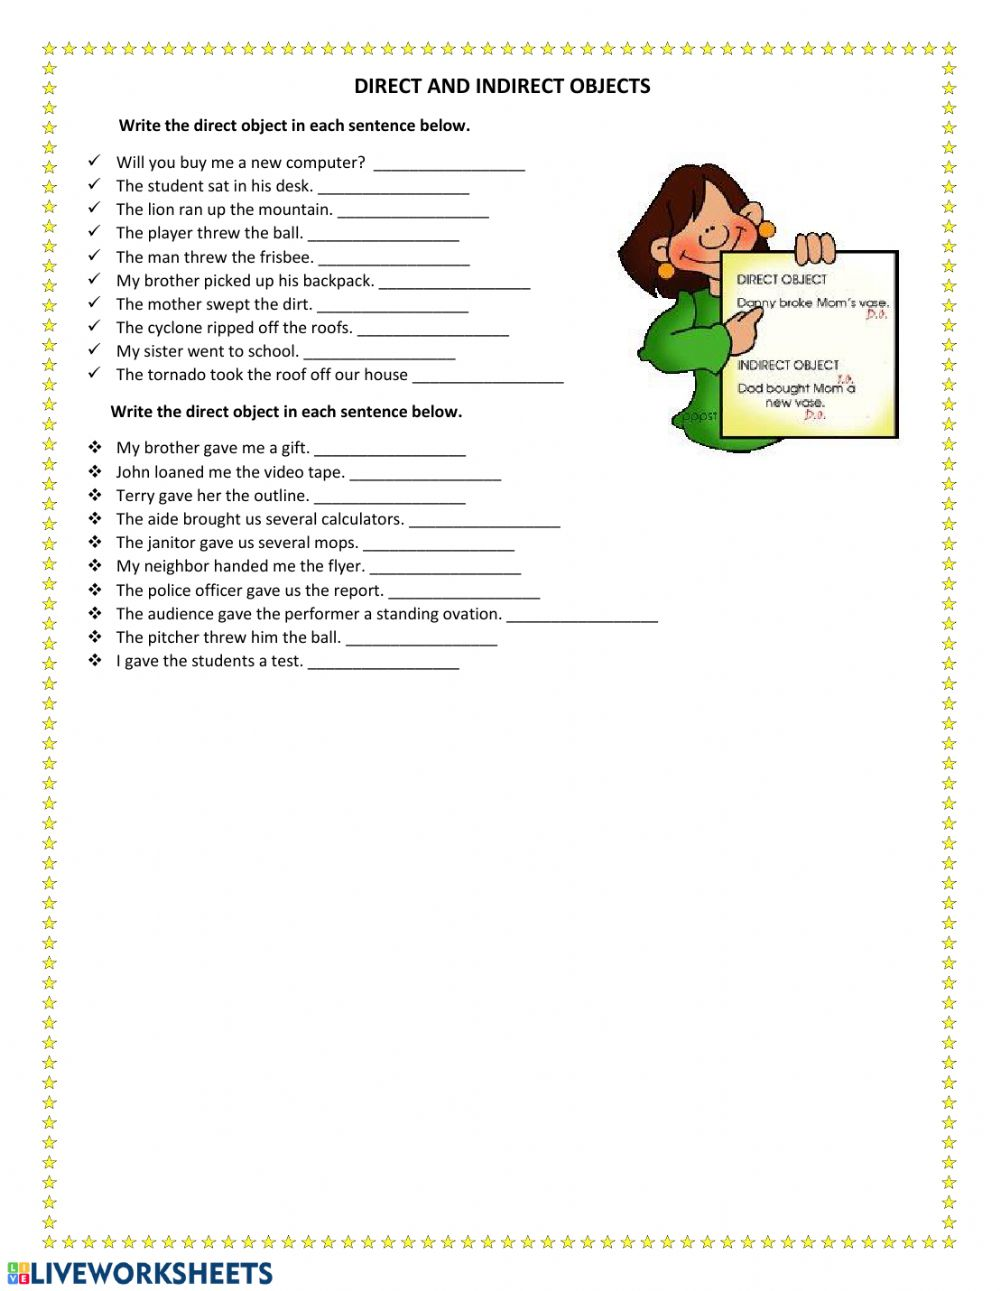 Direct And Indirect Objects Interactive Worksheet